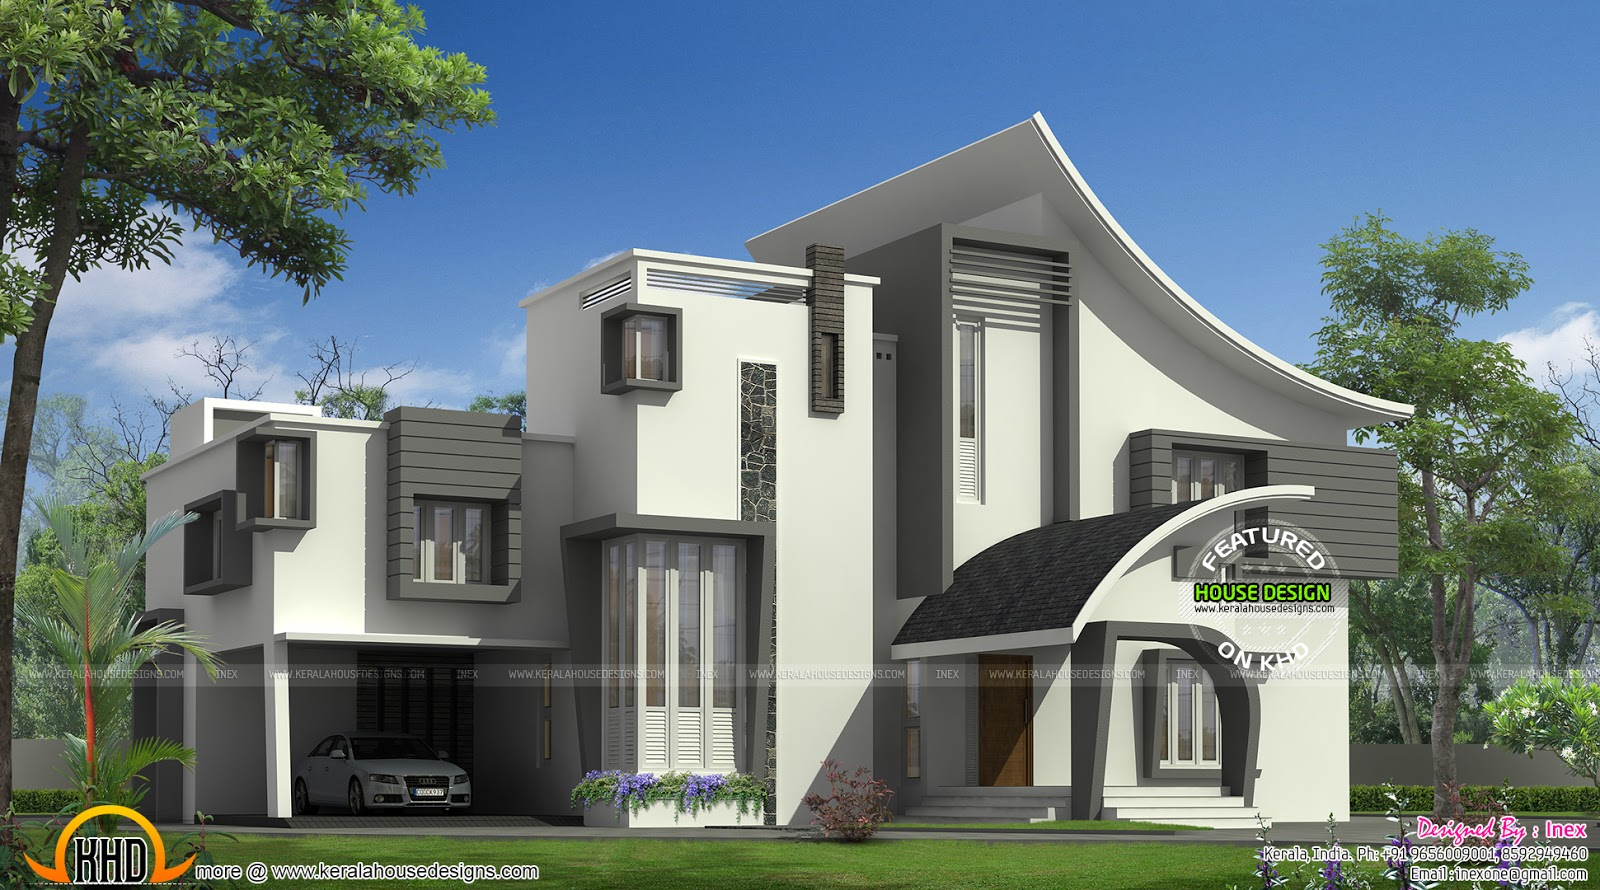 Ultra modern luxury home in Kerala Kerala home design and floor plans